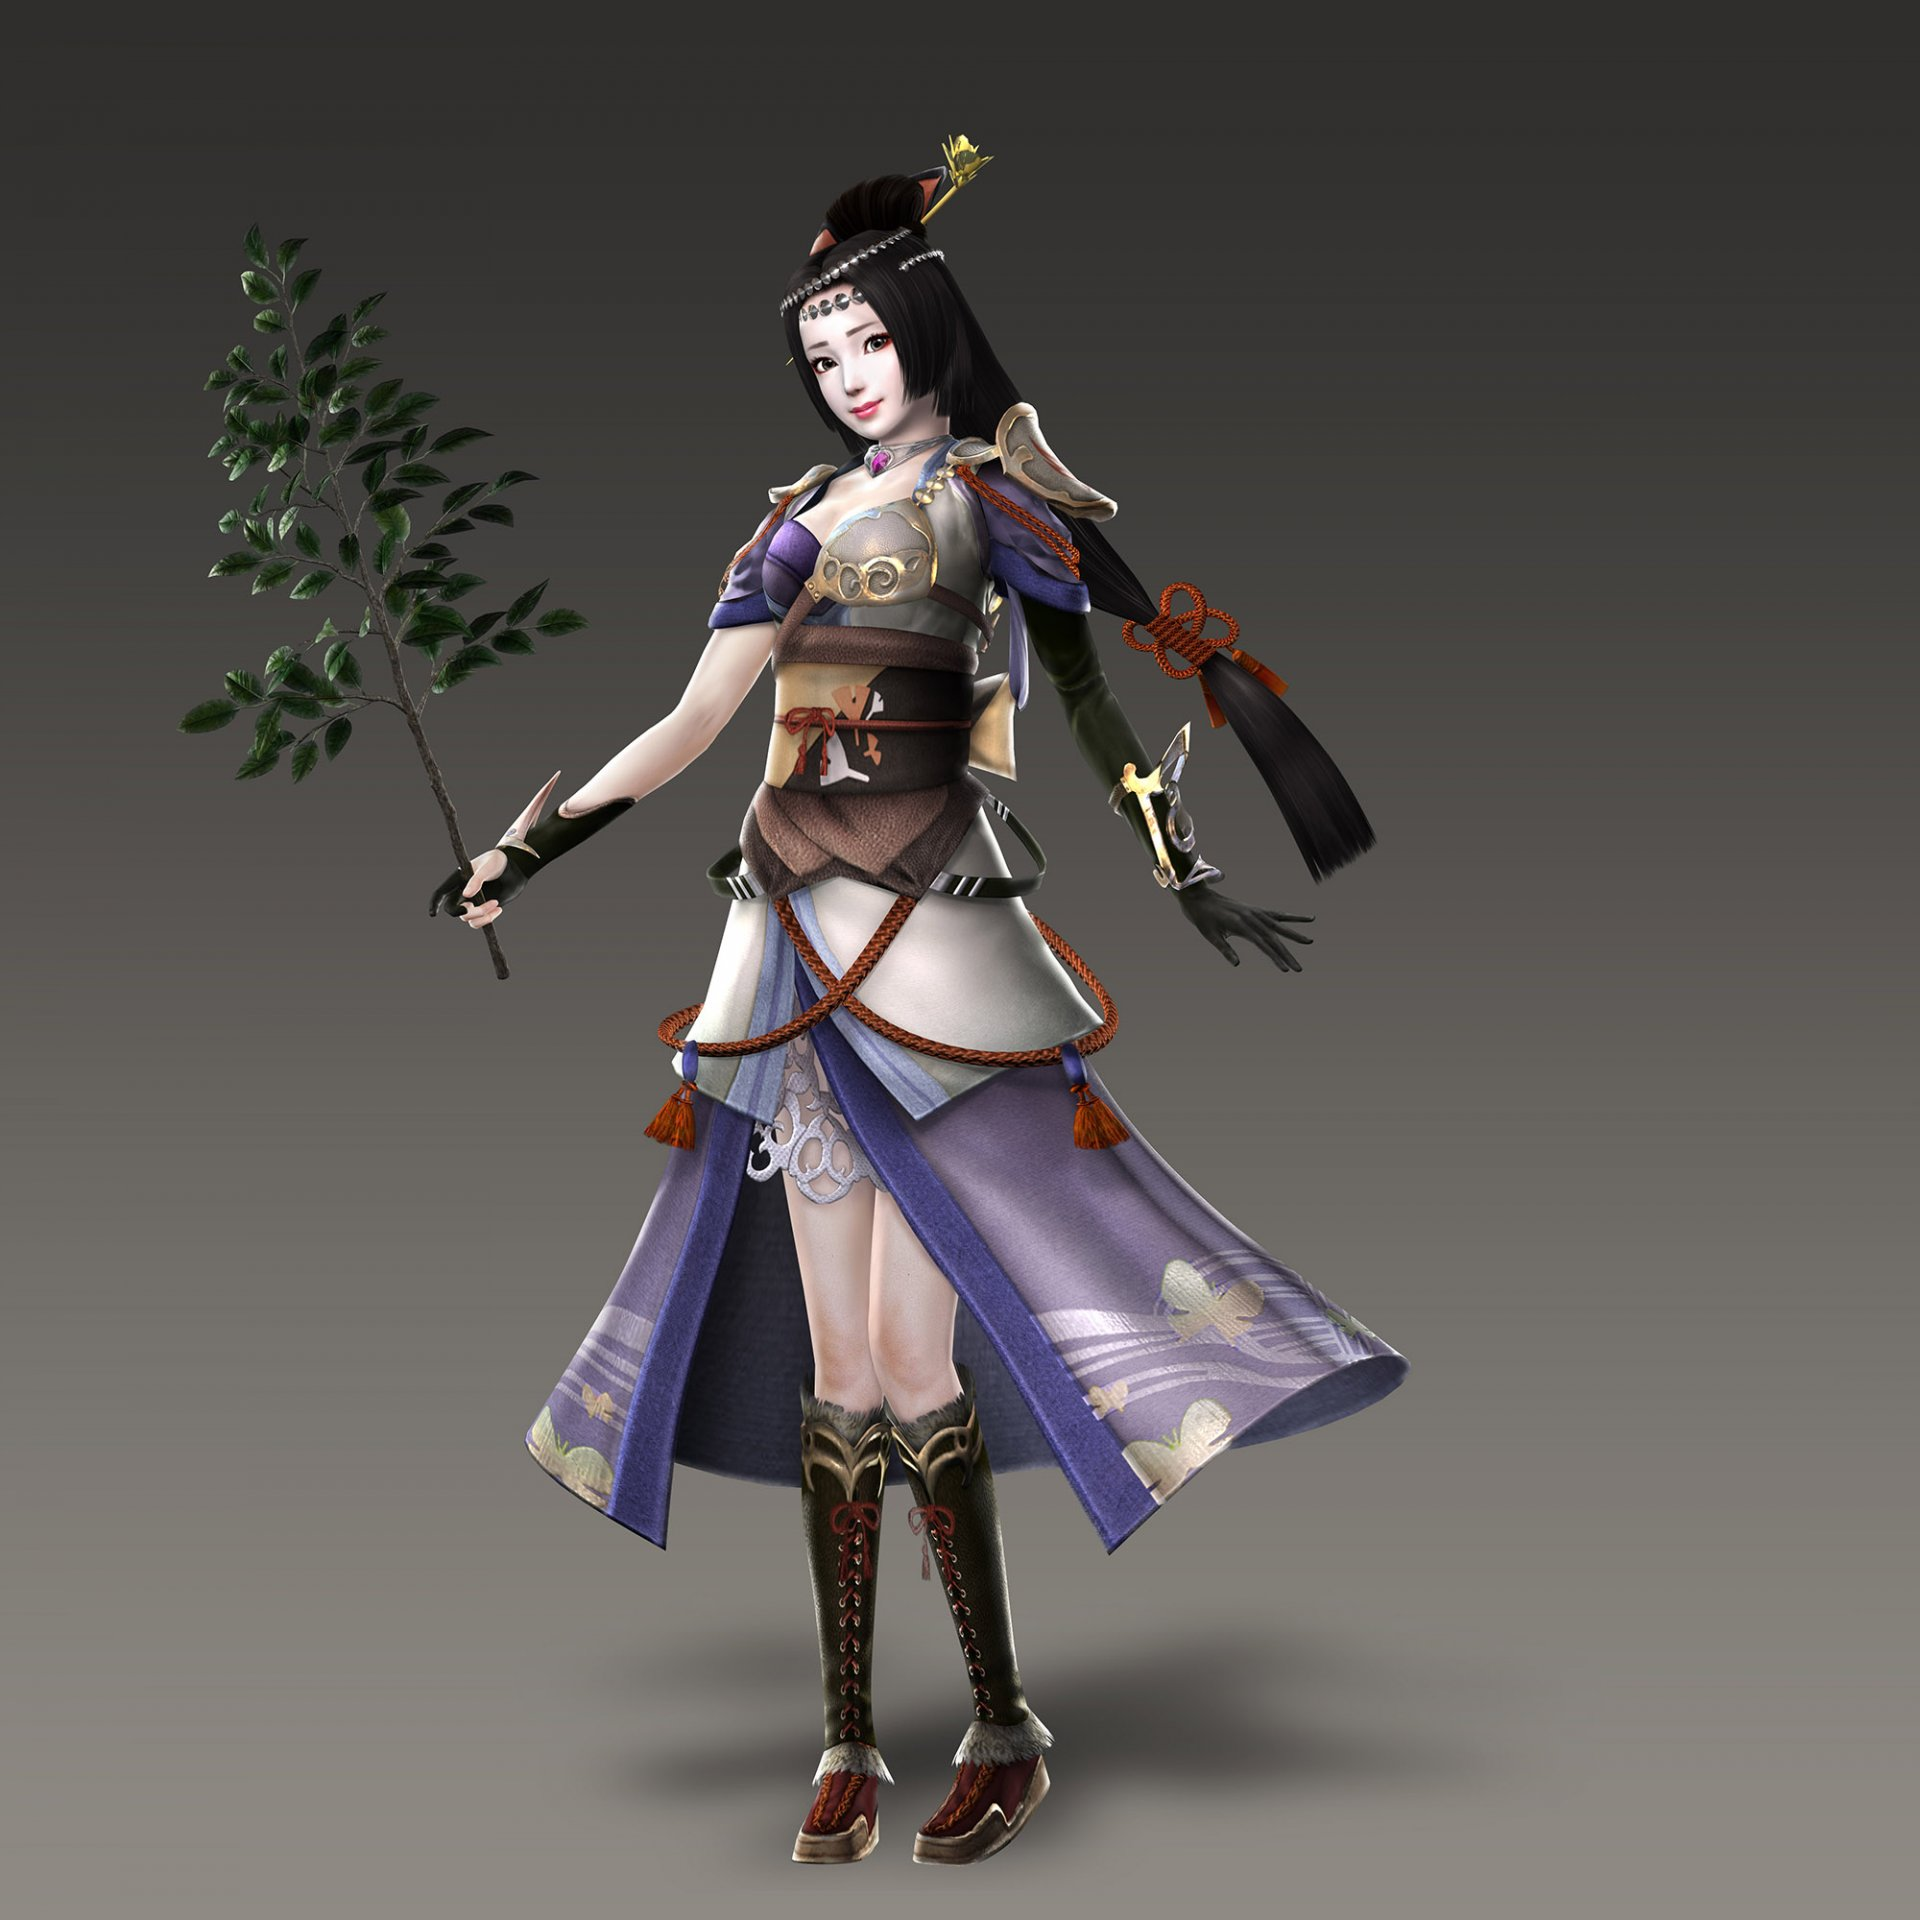 Warriors Orochi 3 Ultimate Infiltration At Anegawa: Imágenes De Warrior's Orochi 3 Ultimate Para PS4